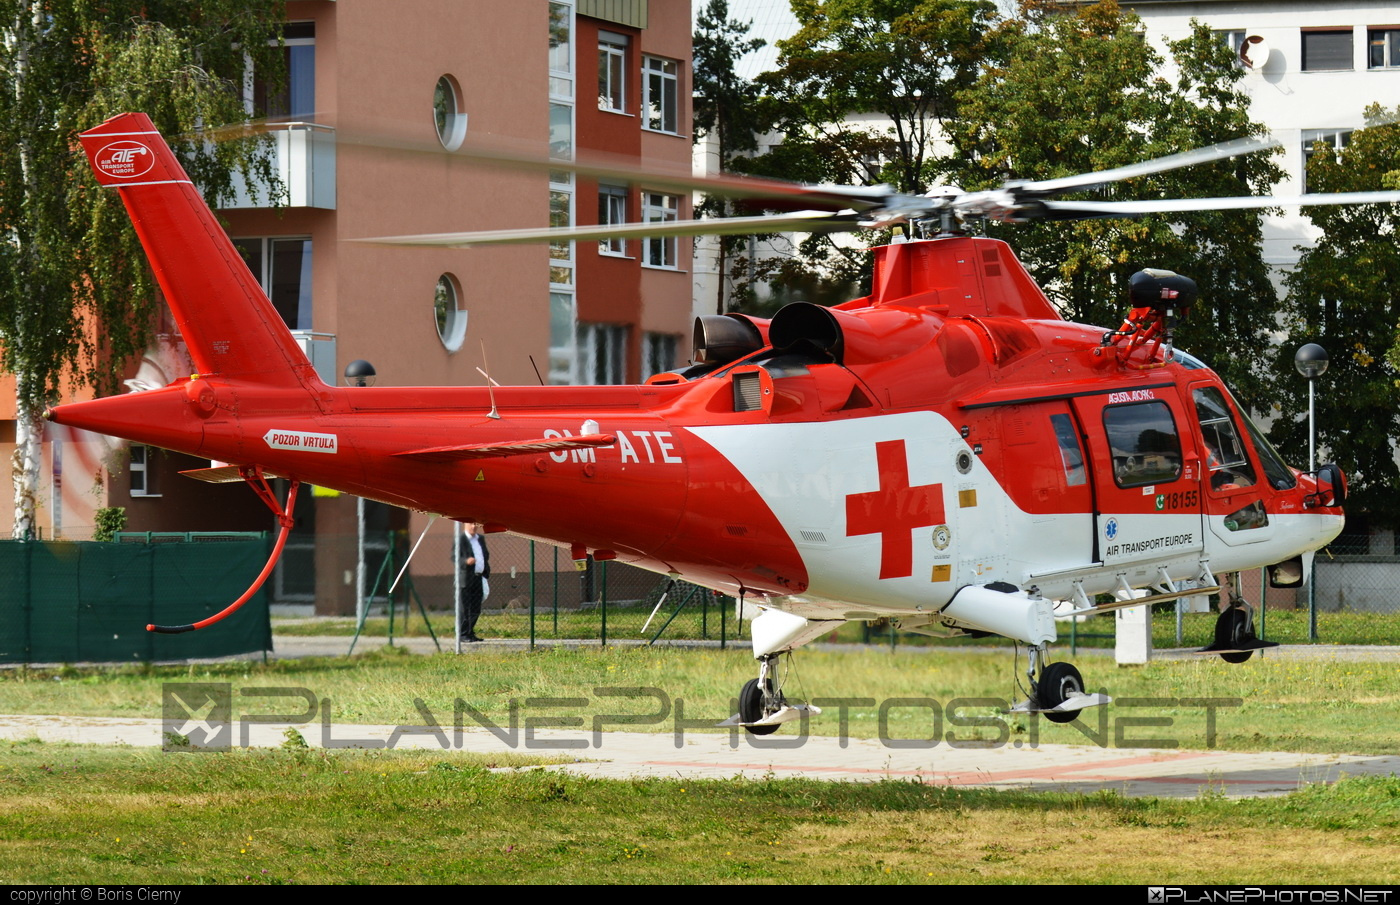 Agusta A109K2 - OM-ATE operated by Air Transport Europe #a109 #a109k2 #agusta #agusta109 #agustaa109 #agustaa109k2 #airtransporteurope